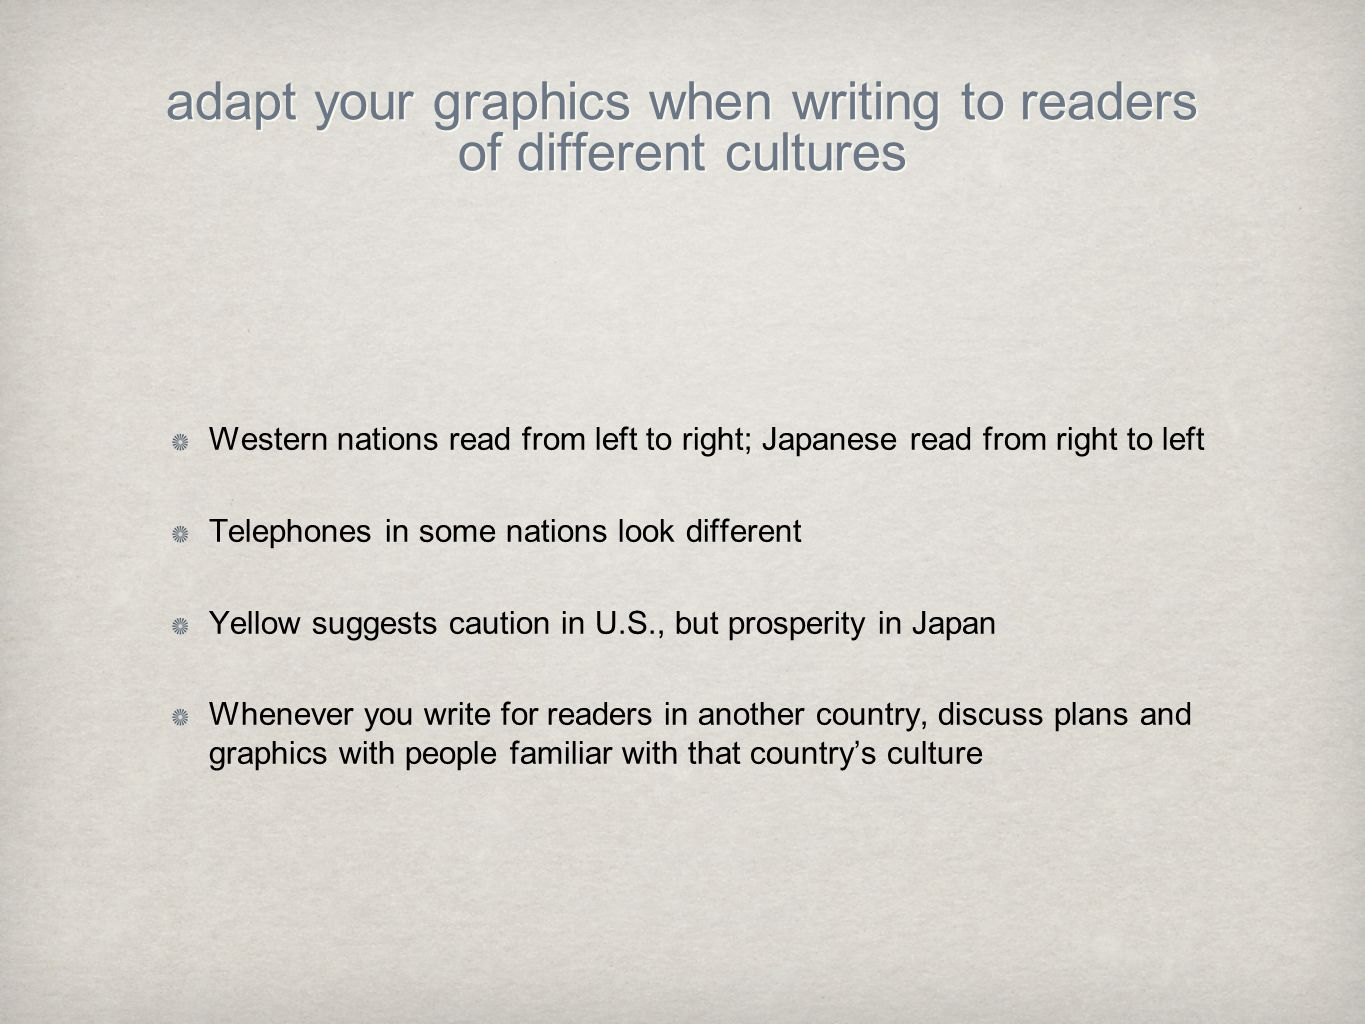 adapt your graphics when writing to readers of different cultures Western nations read from left to right; Japanese read from right to left Telephones